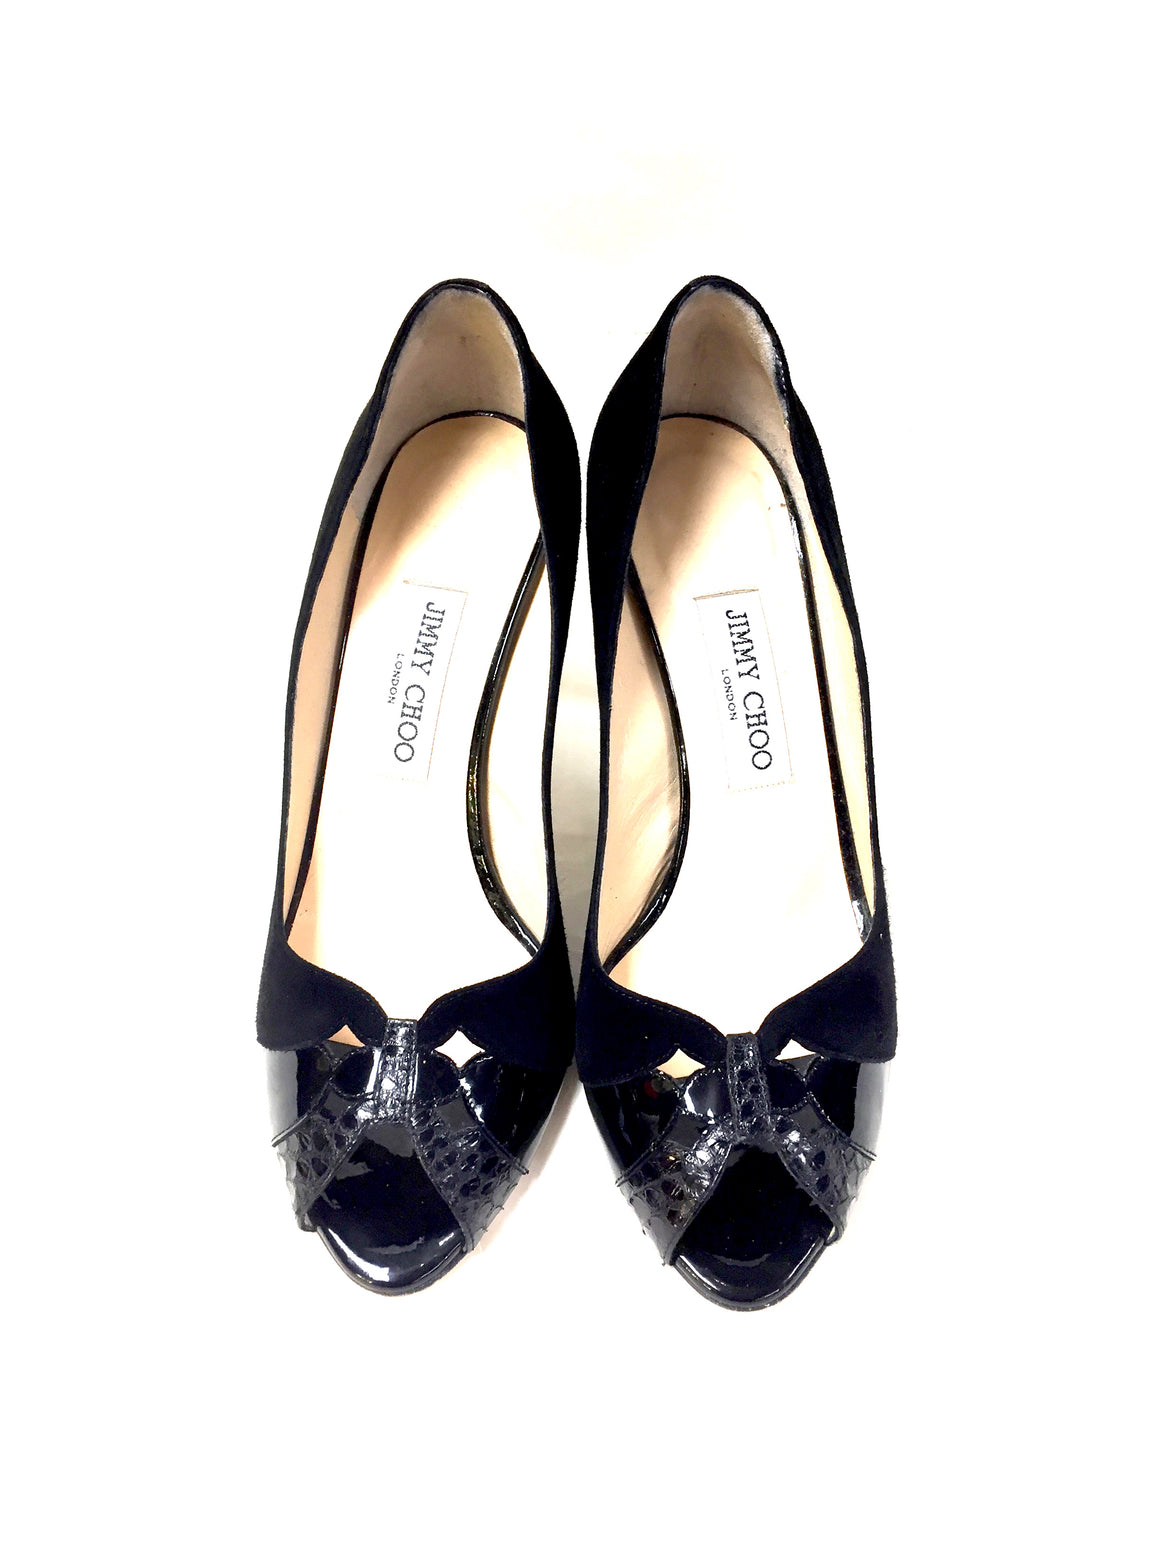 JIMMY CHOO Black Suede Black Patent Leather & Python Skin Accent Peep-Toe Heel Pumps Shoes Size: 39 / 9